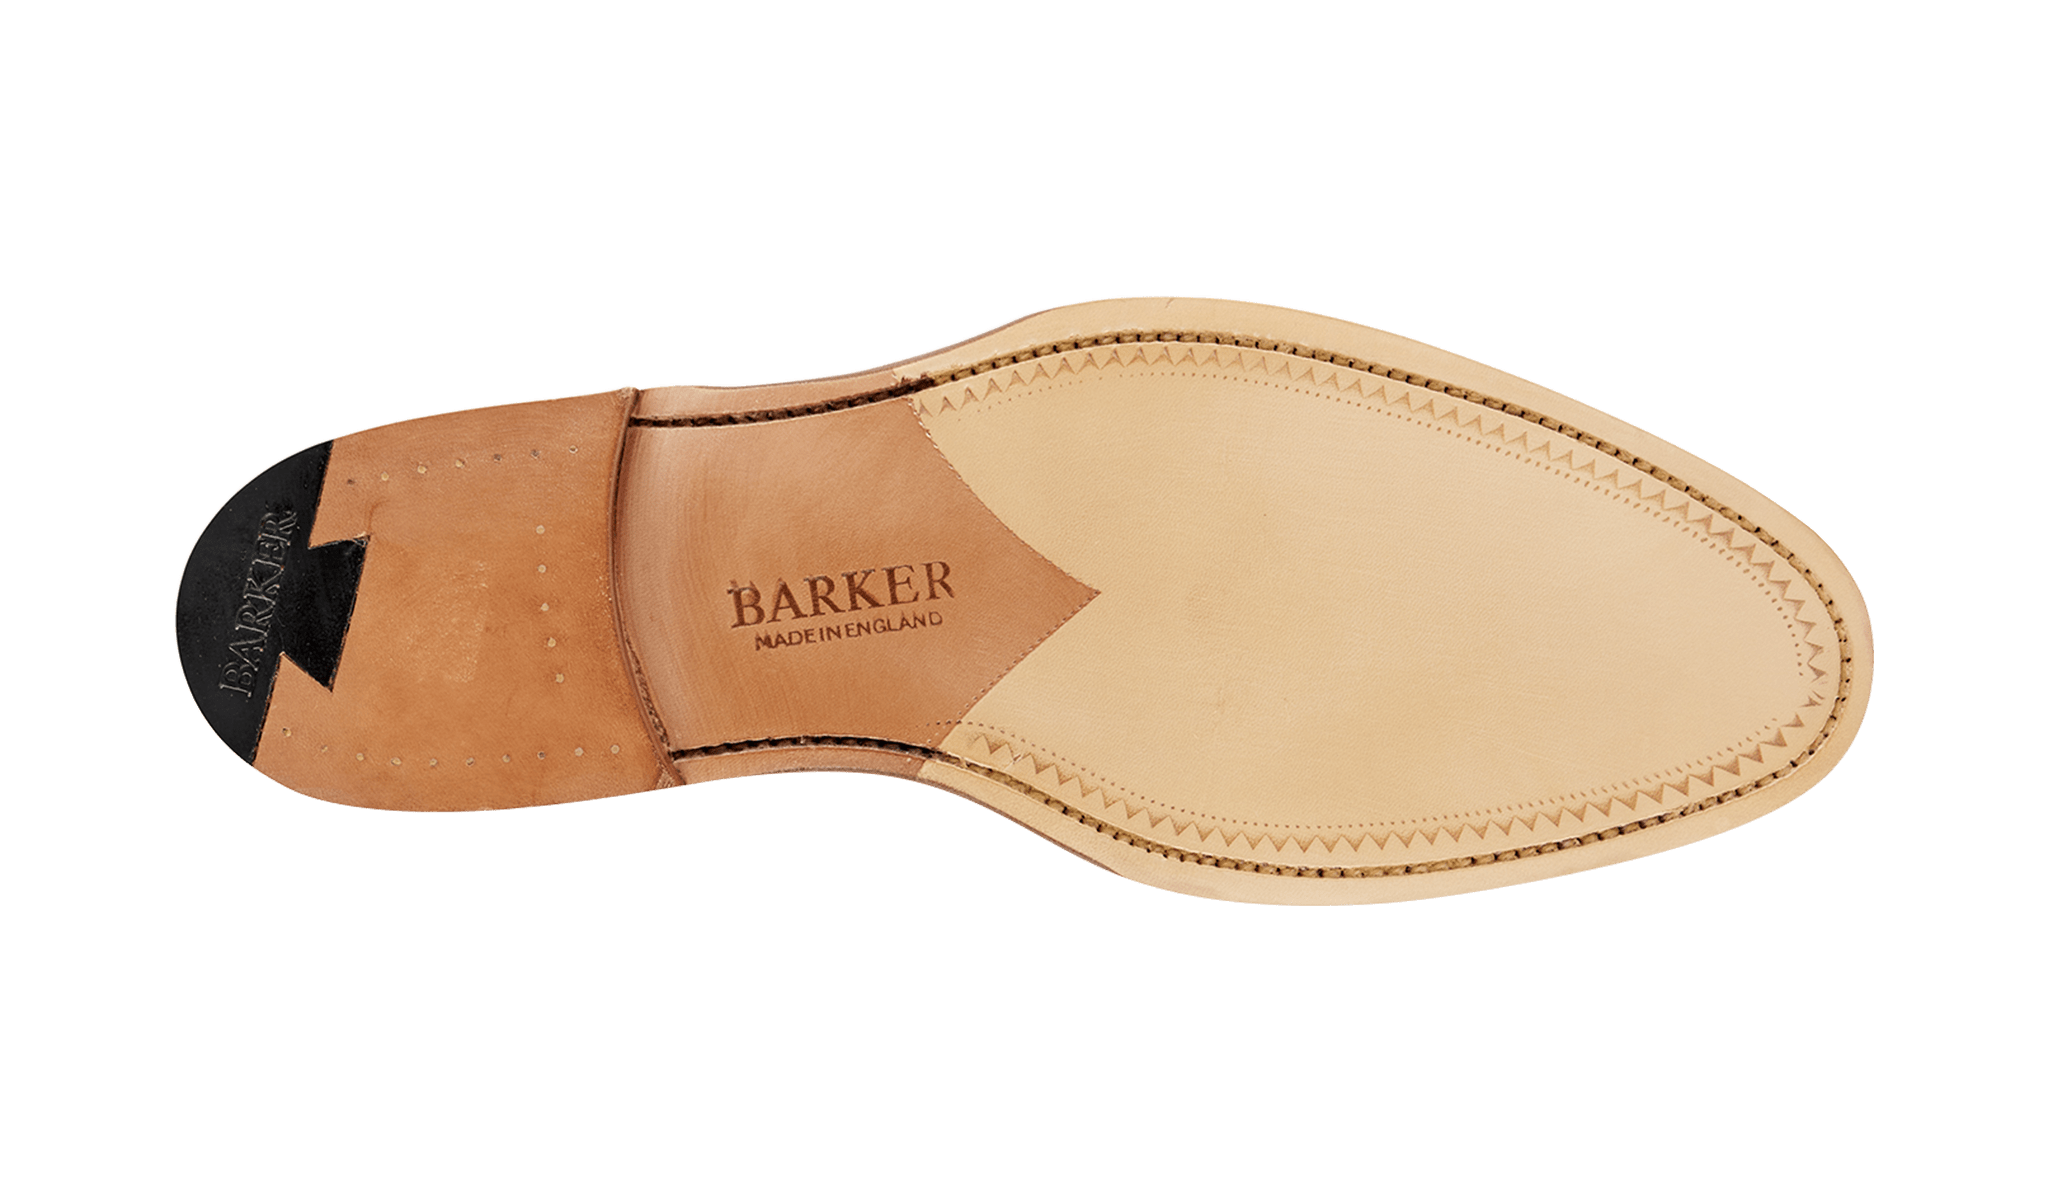 Barker Men's Hartley Leather Oxford Shoes 4272/17 - British Shoe Company